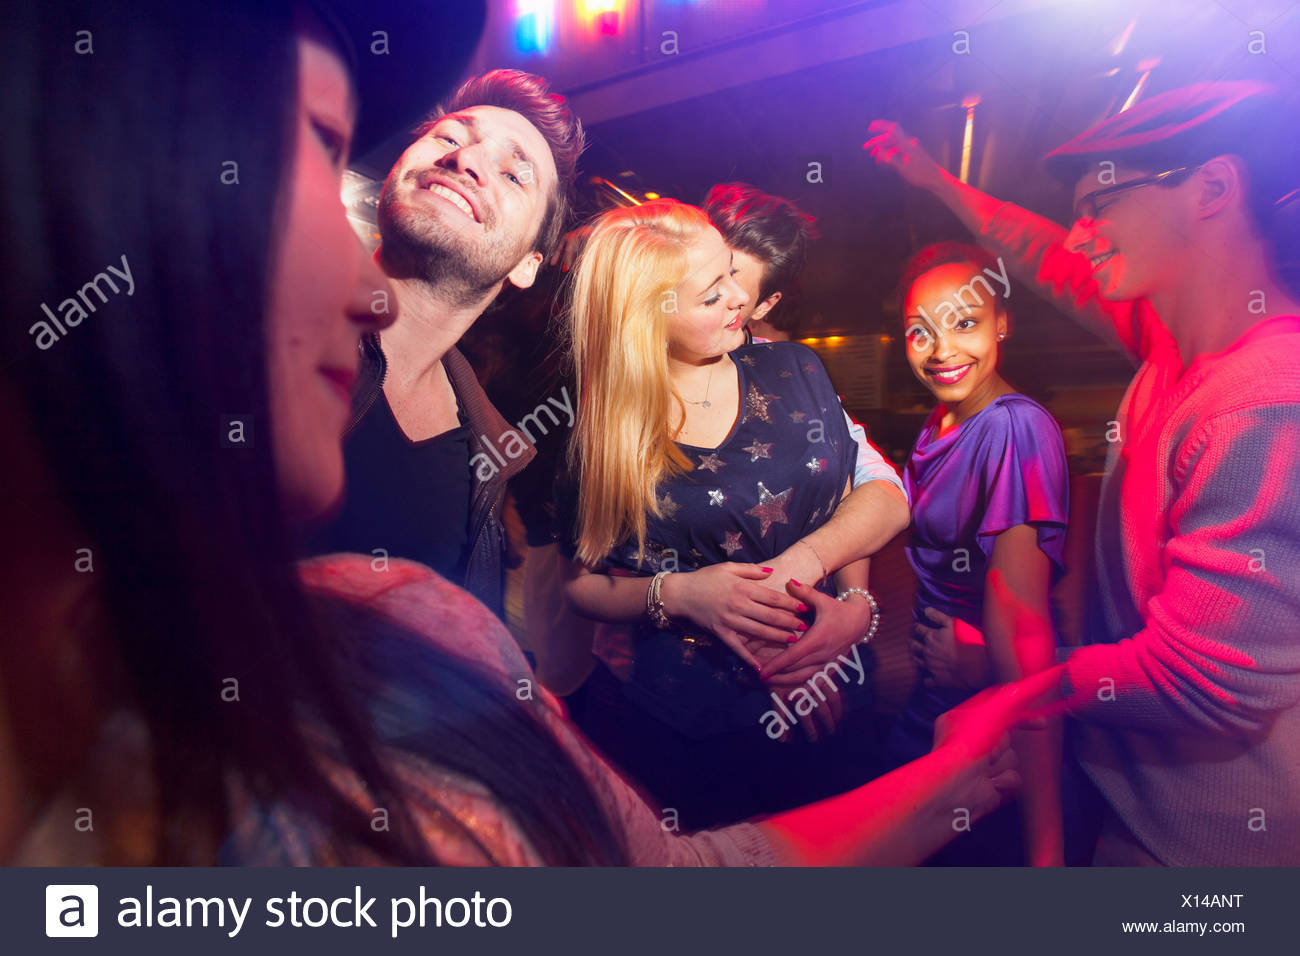 Group of people at party, man kissing woman's neck - Stock Image